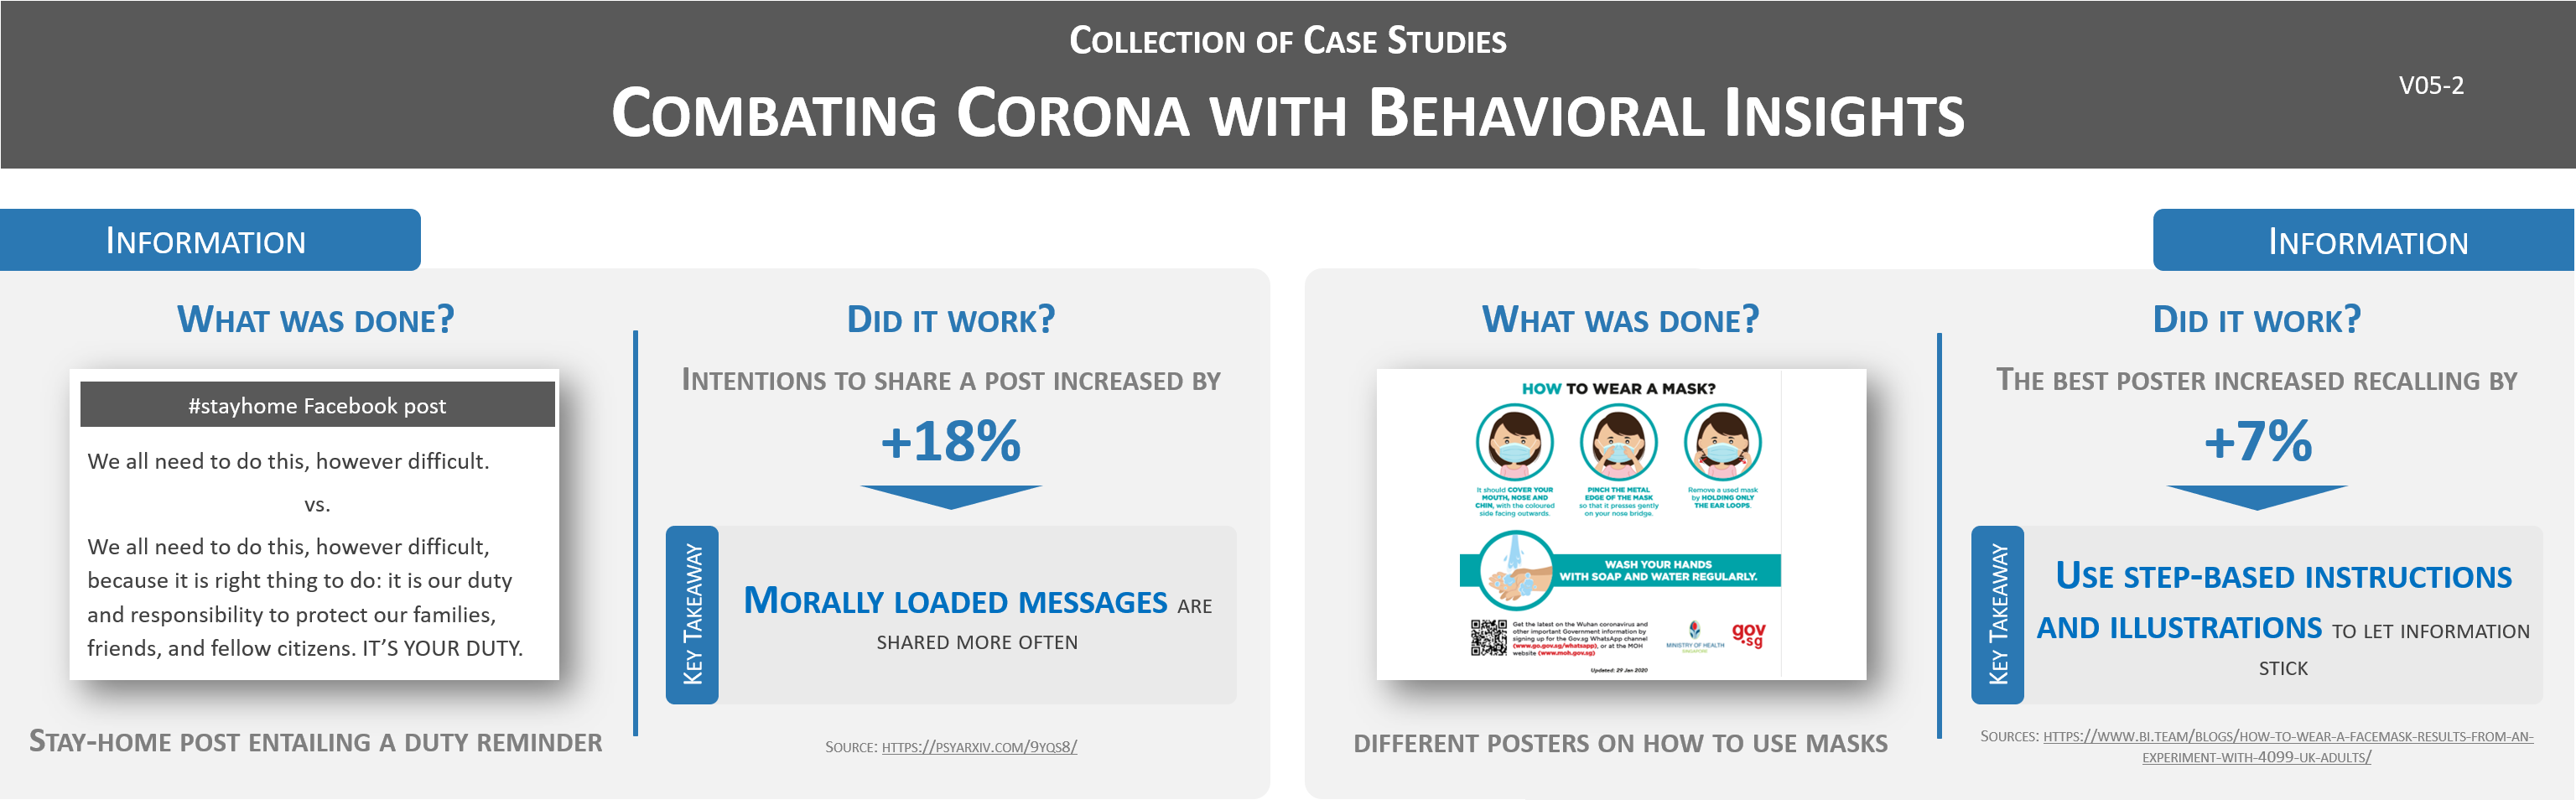 Poster - Combating Corona with Behavioral Insights - Behavia